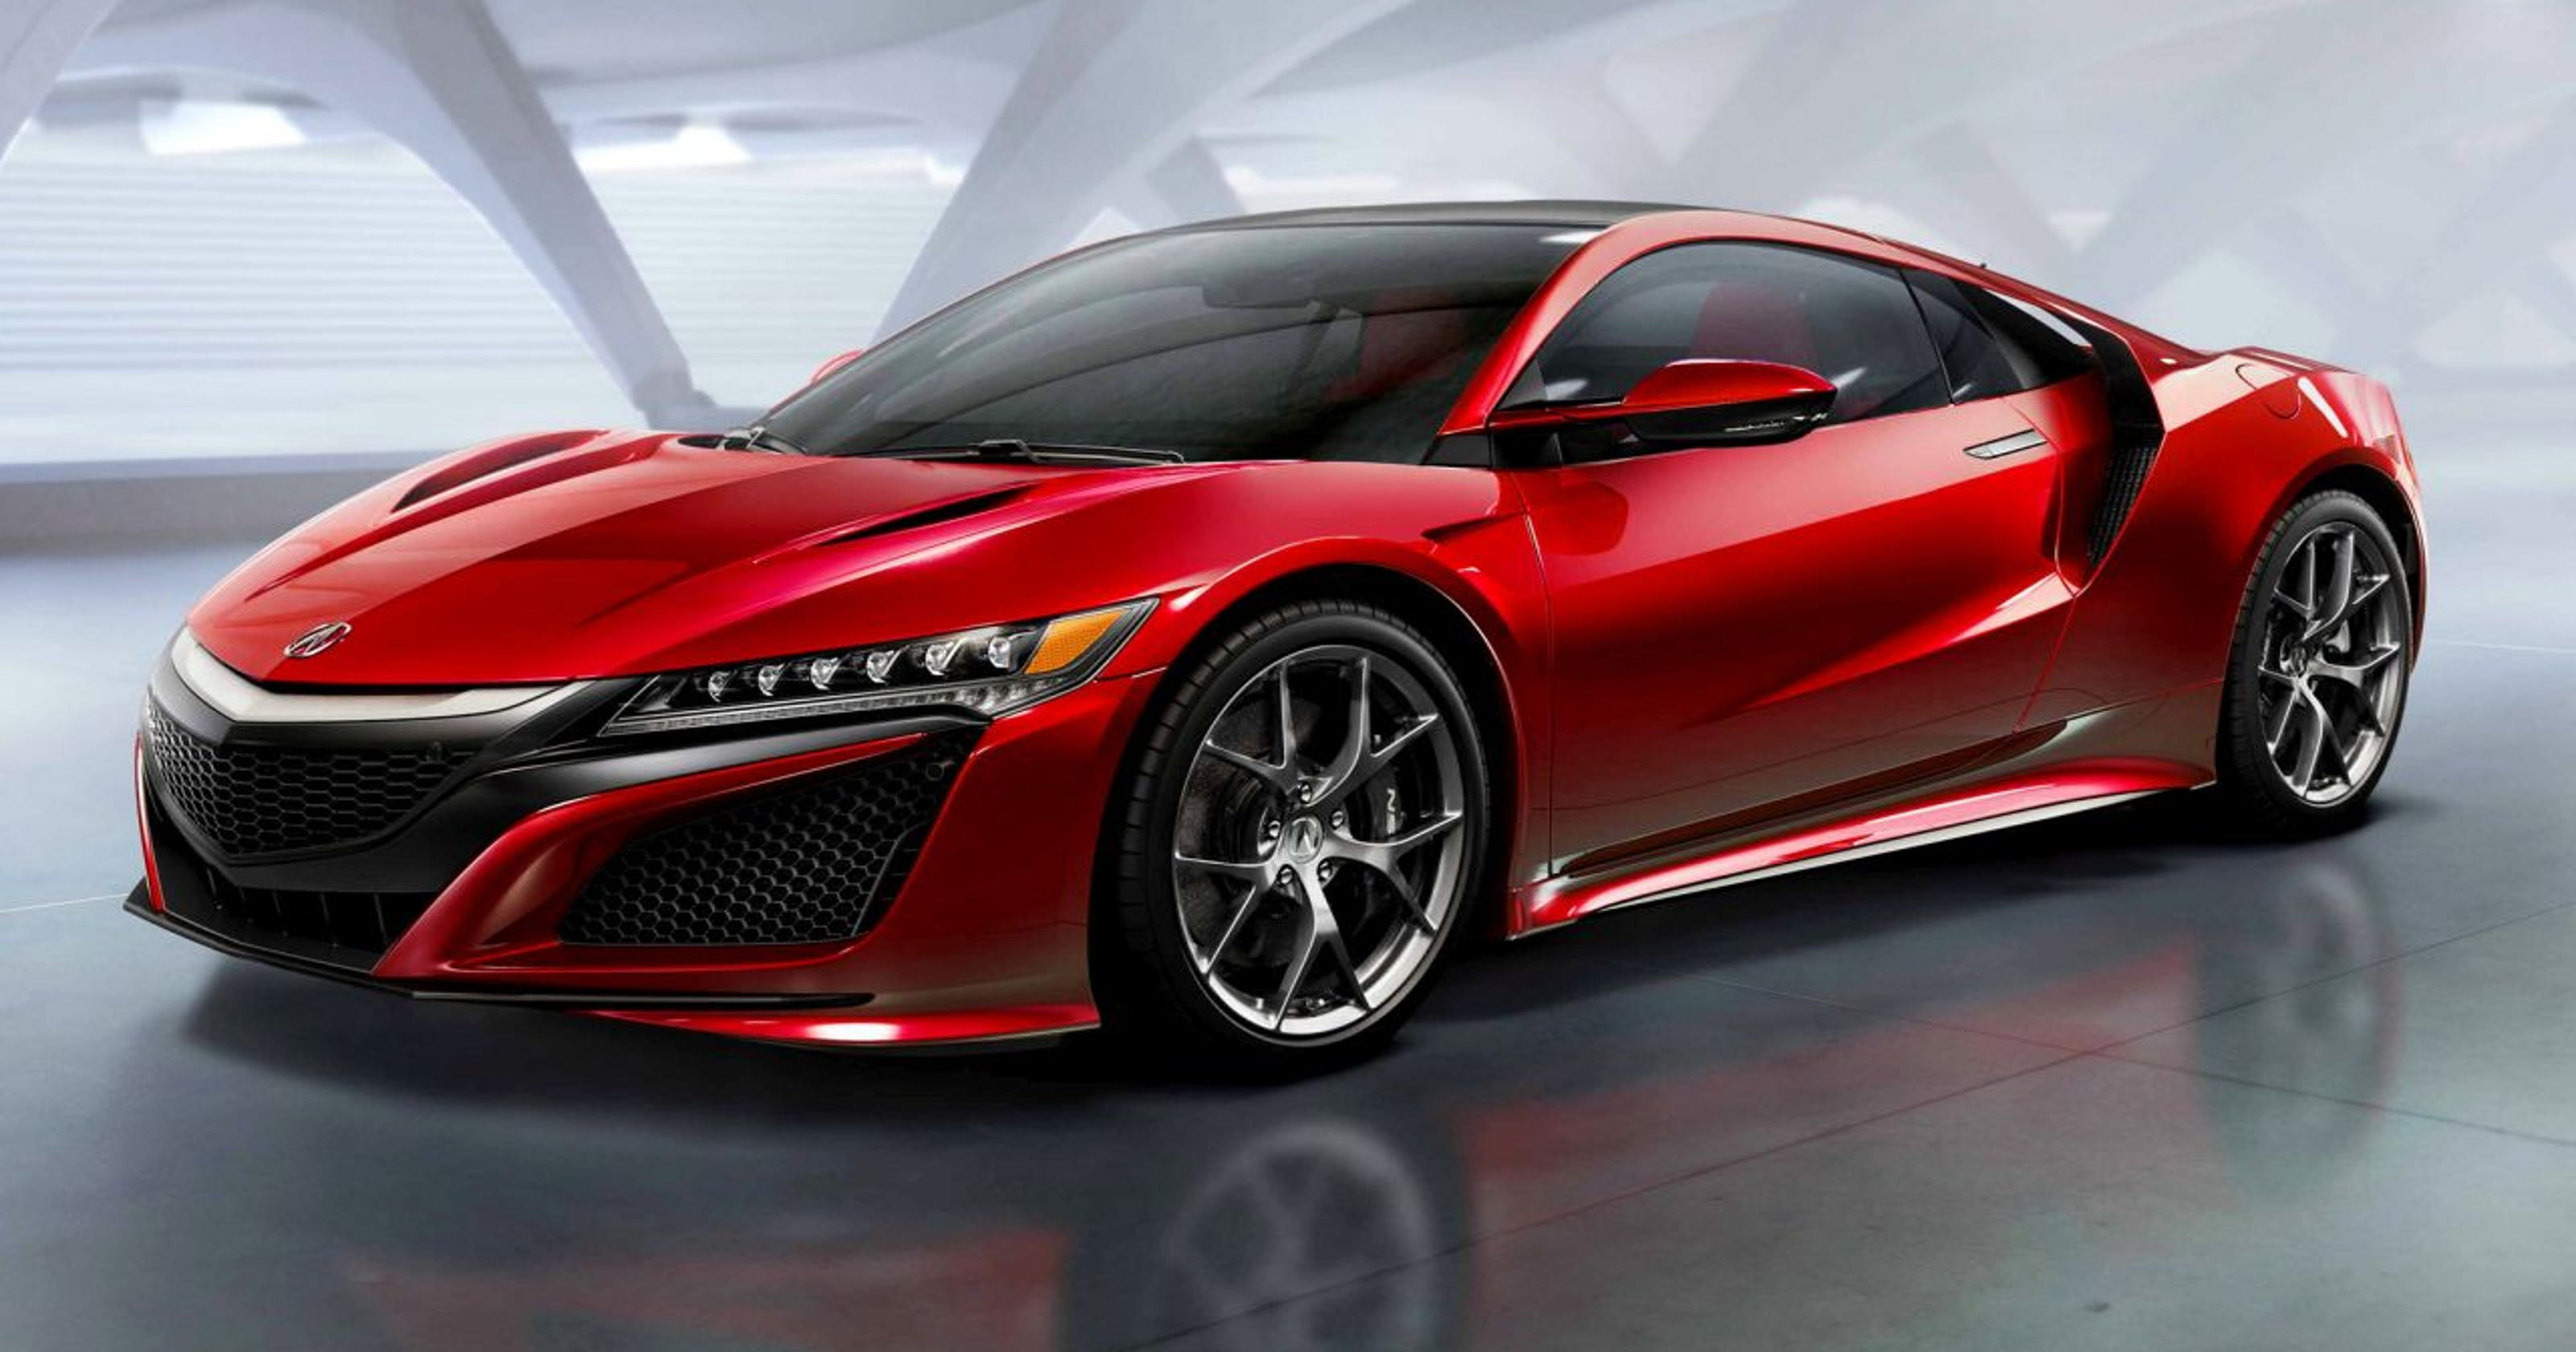 back to the future: 2016 acura nsx supercar